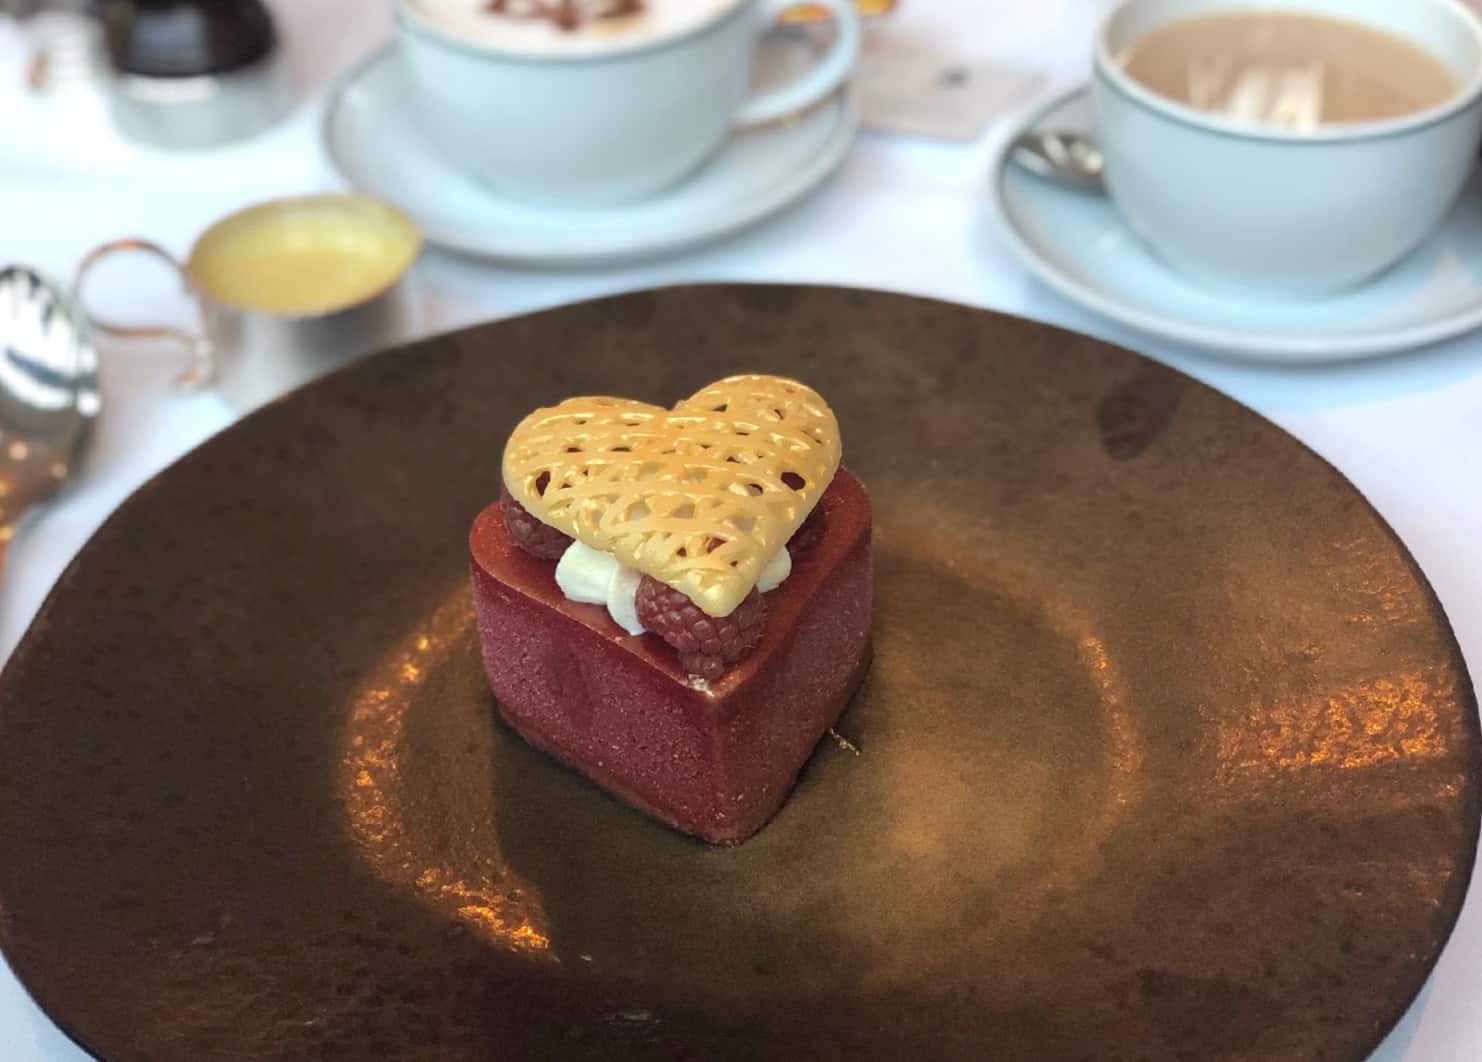 The valentines dessert at the Ivy Manchester